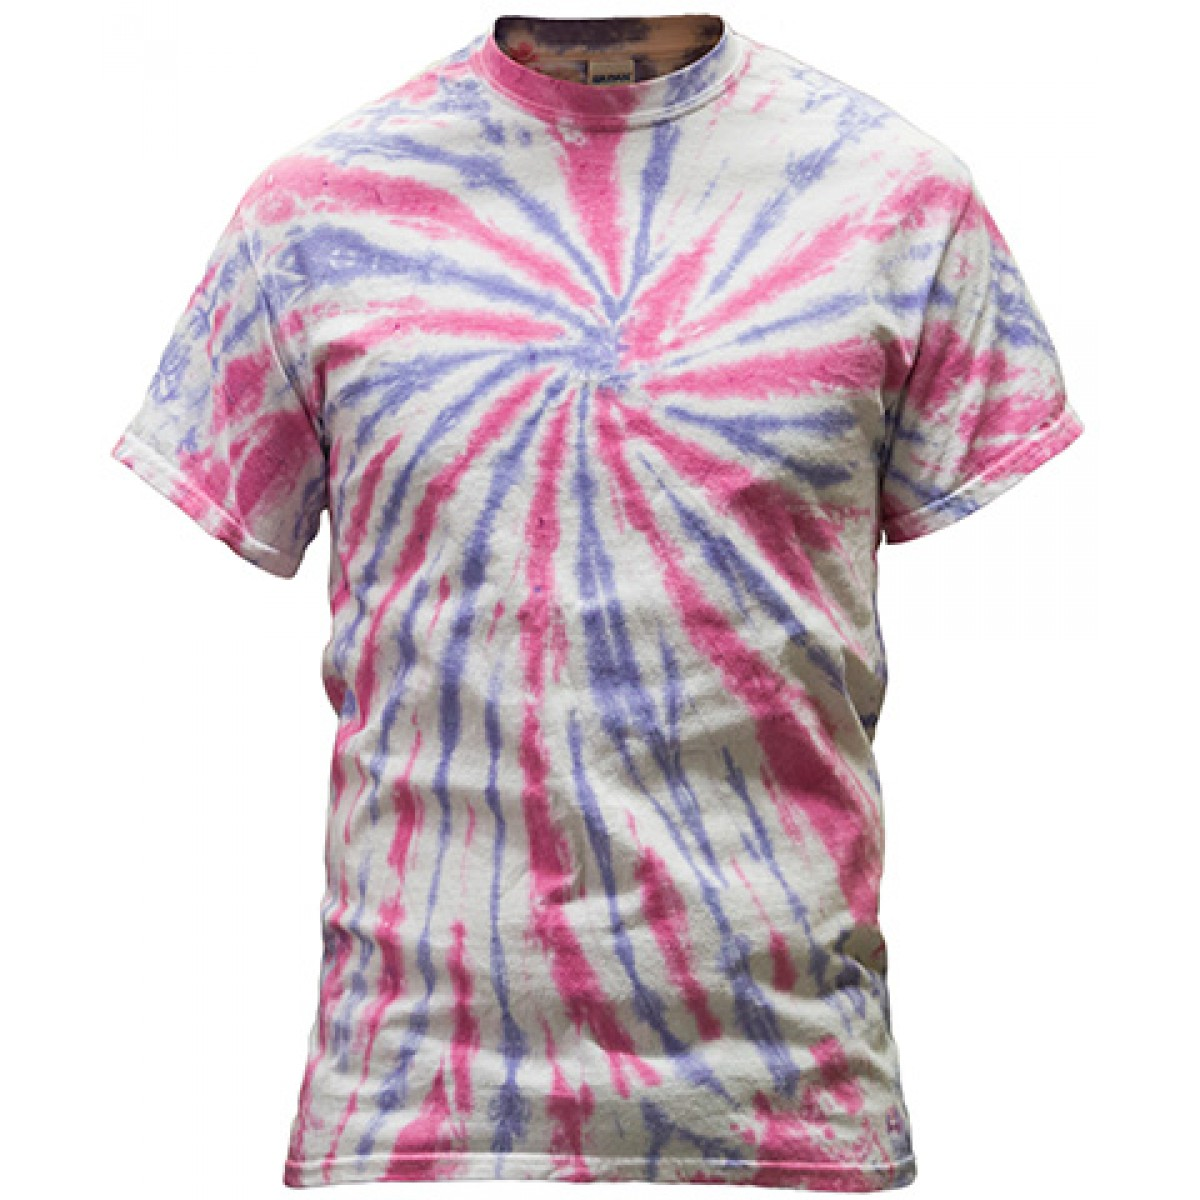 Multi-Color Tie-Dye Tee -Pink/Purple-L